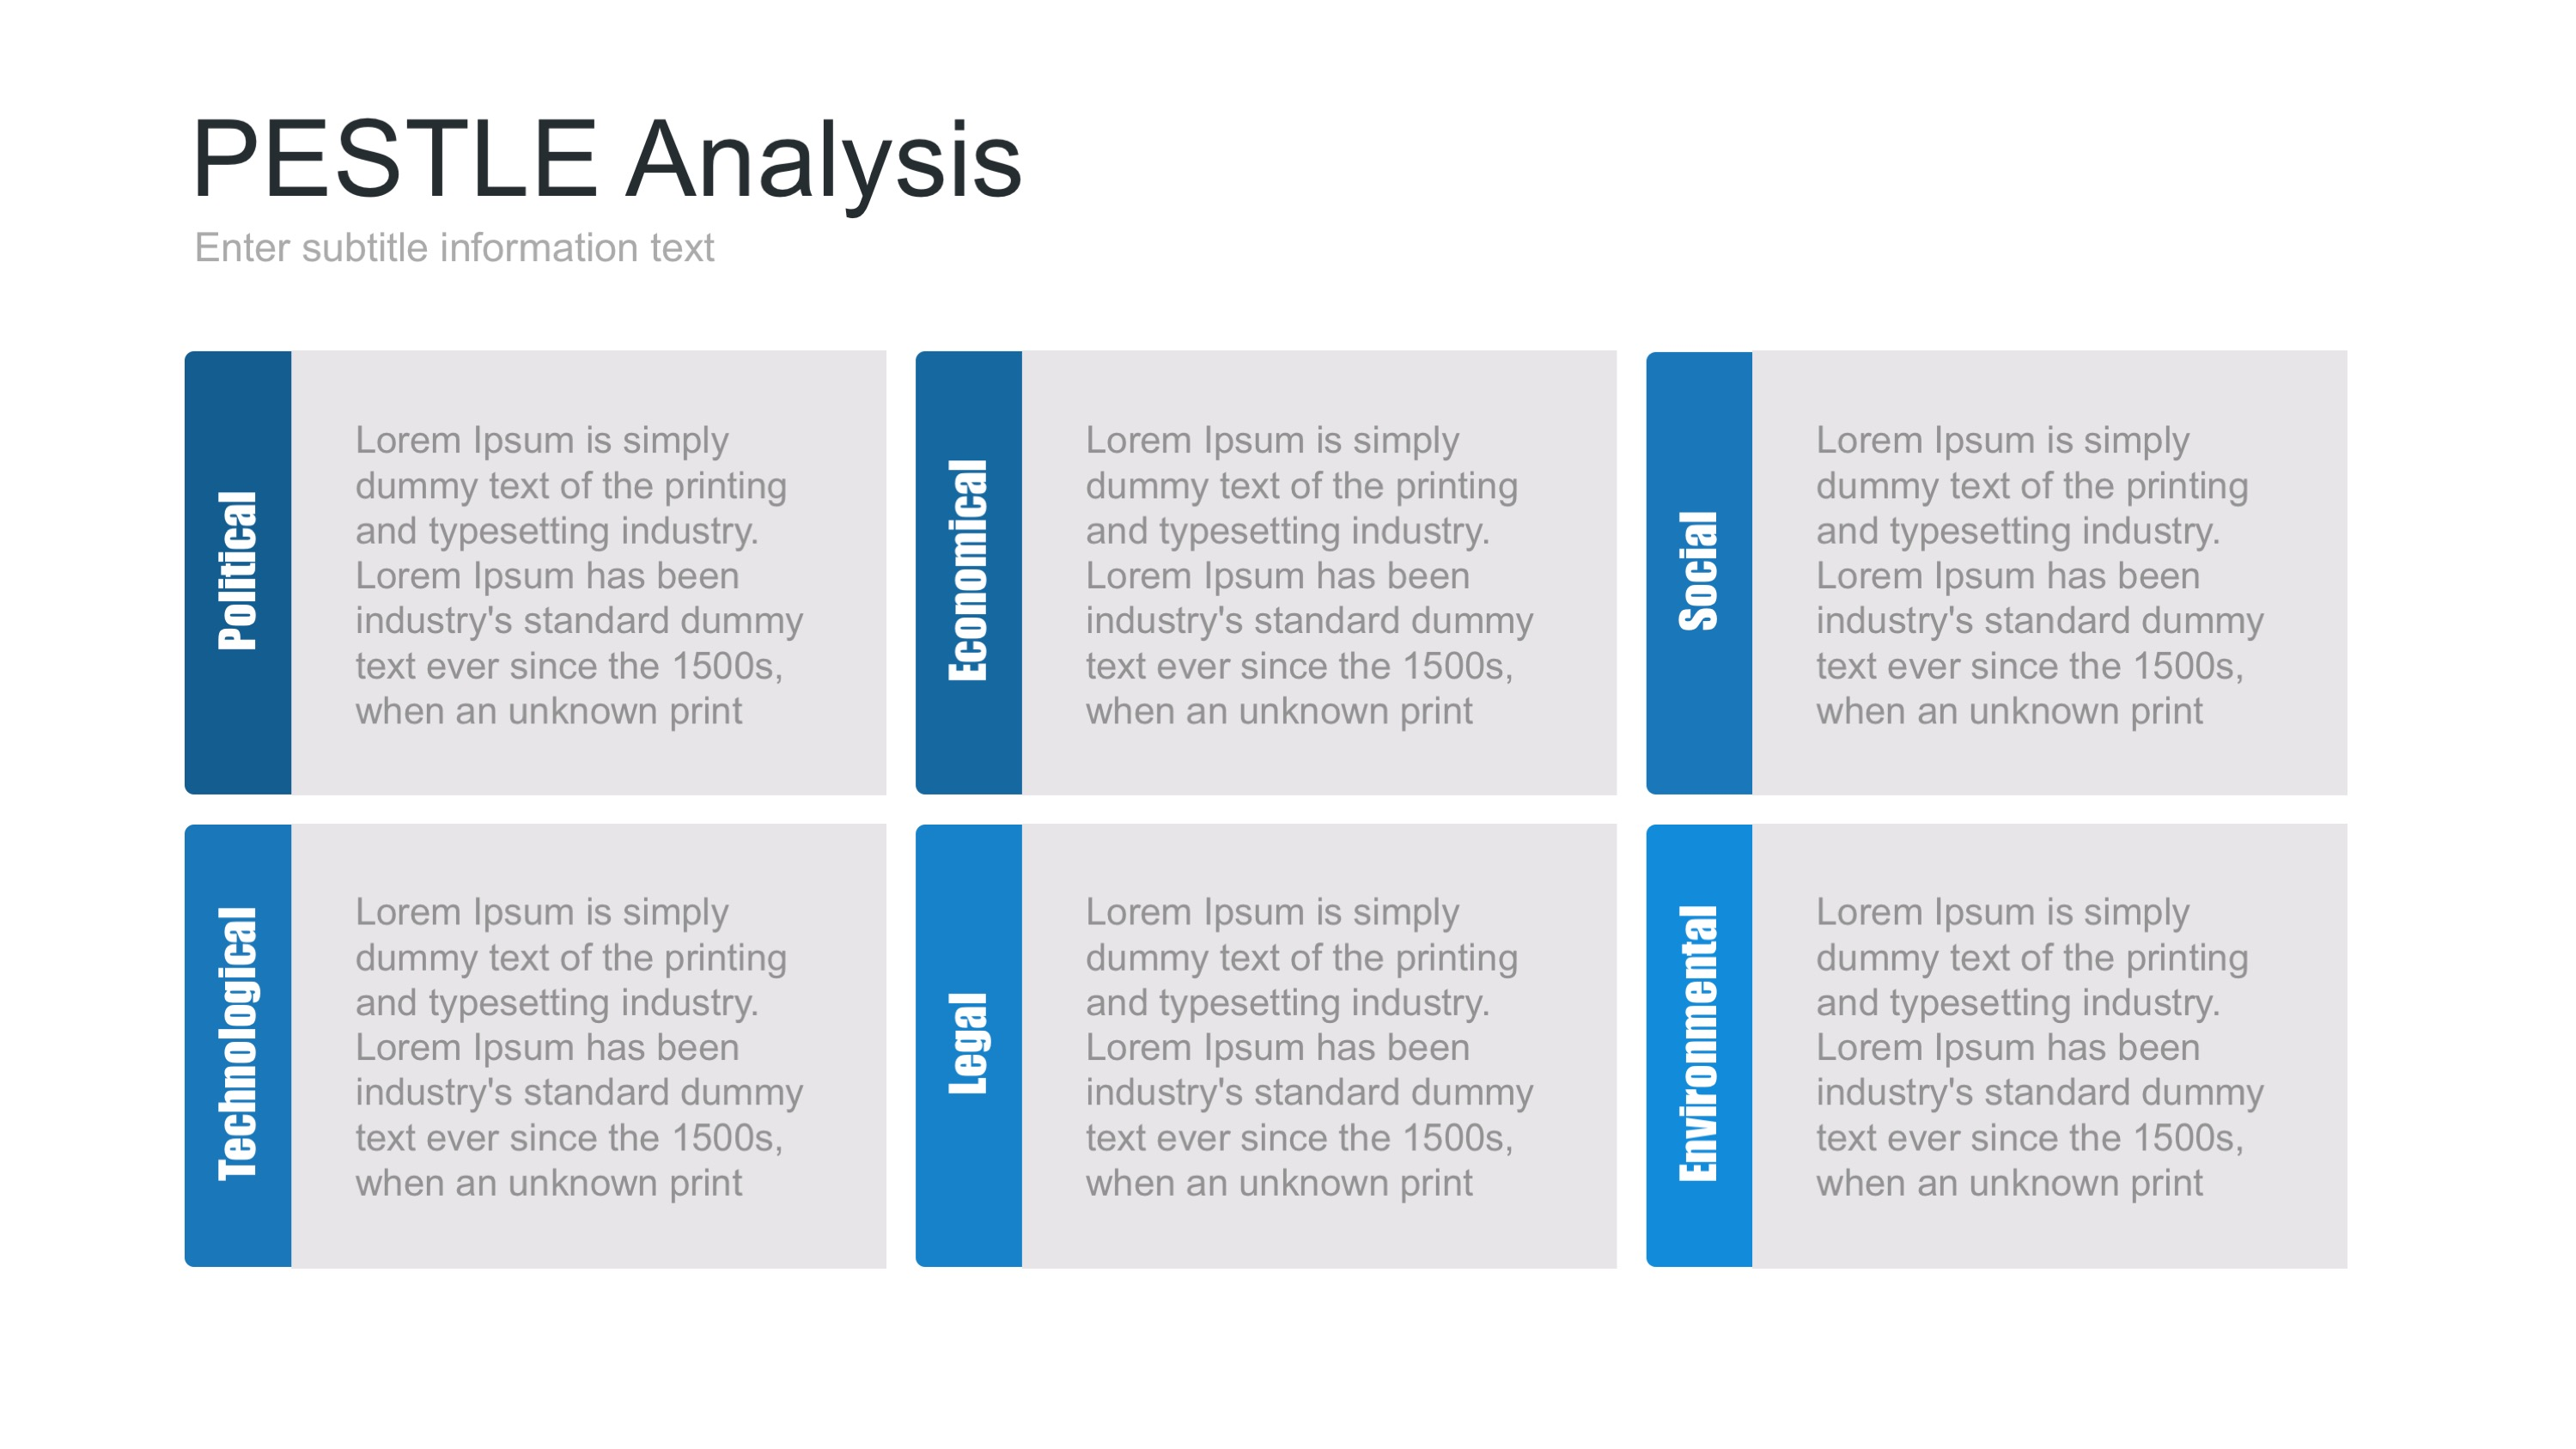 pest analysis template Swot analysis template swot analysis template incorporated the swot analysis as an situation analytical tool used in conjunction with strategic planning.